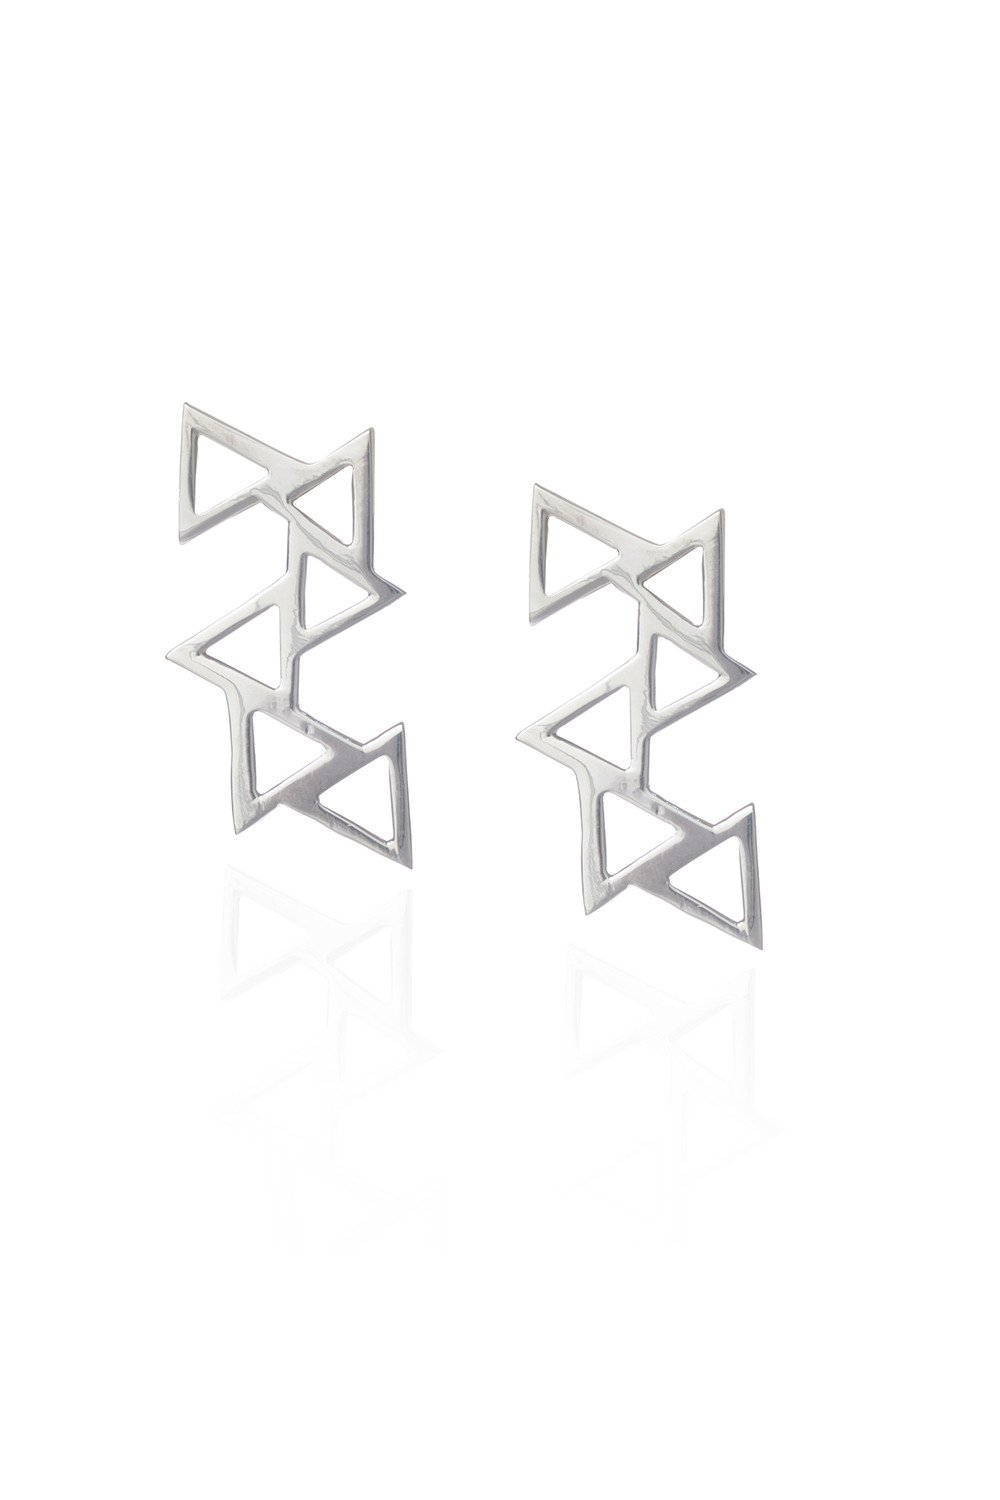 Ladder of Life, Silver Earrings by Sally Lane Jewellery on curated-crowd.com